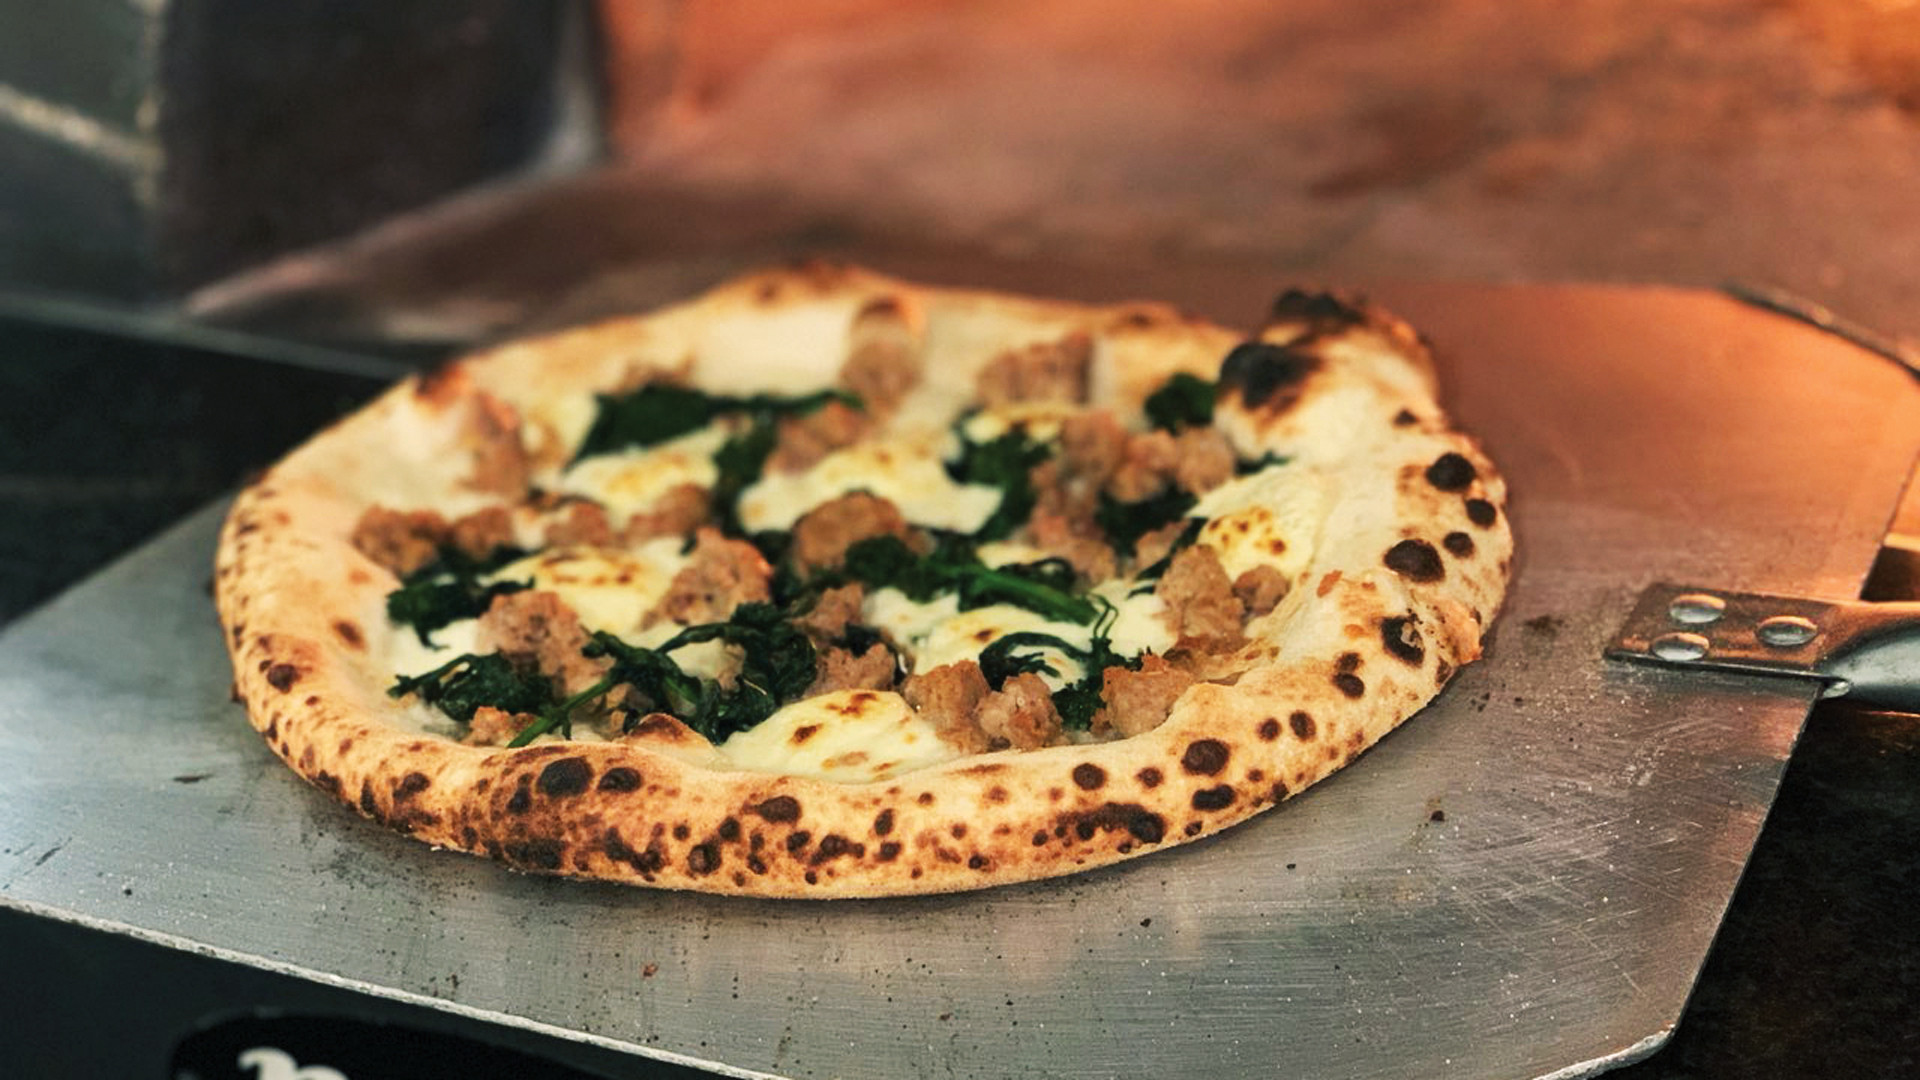 A pizza coming out of the authentic wood burning oven at La Fontana, one of the best Elora restaurants